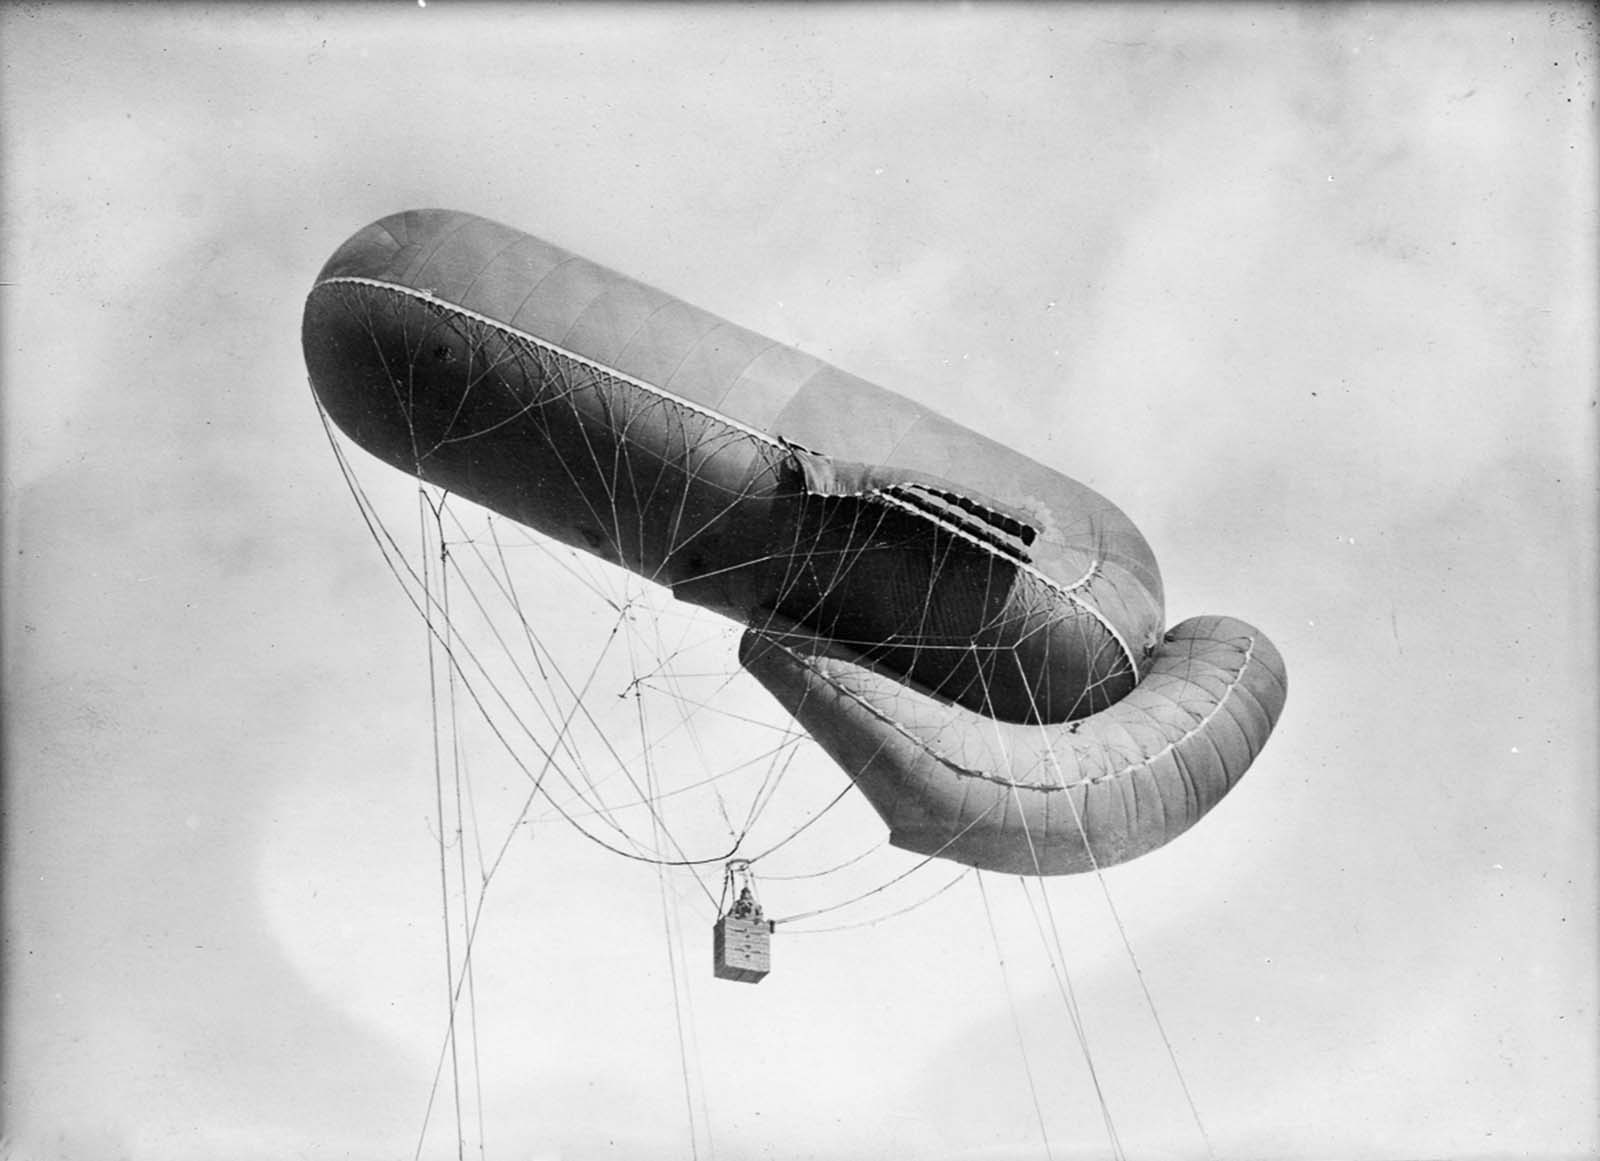 A German observation balloon in flight. 1915.